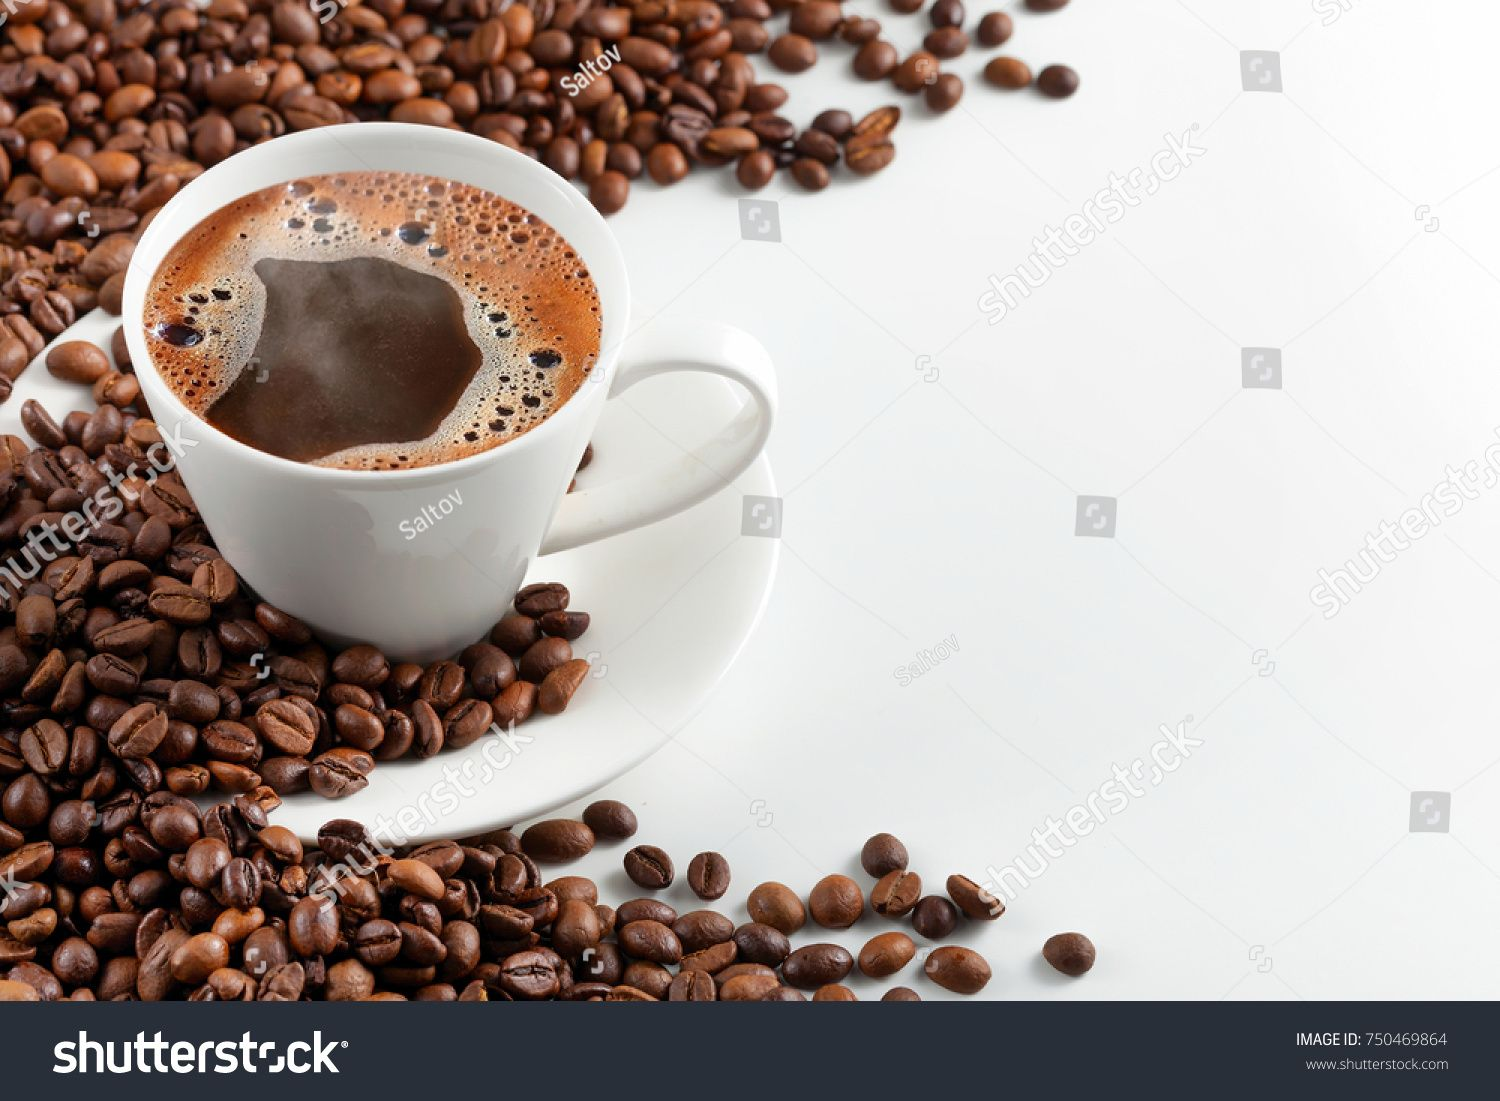 A Cup Of Hot Coffee With Foam In A Scattering Of Coffee Beans On A